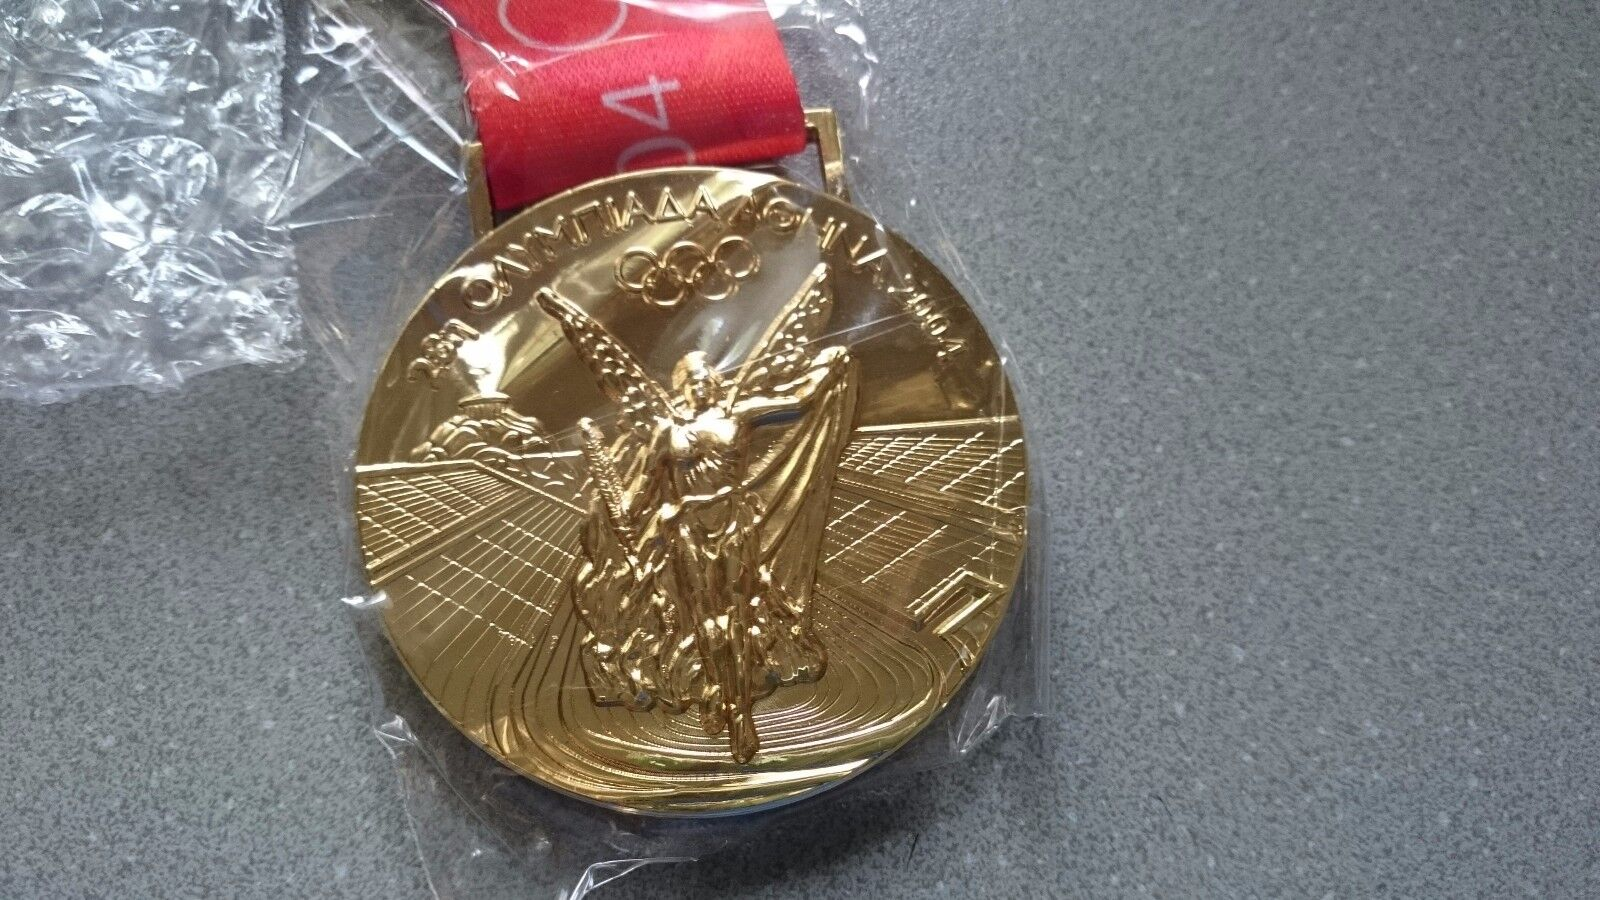 Goldmedaille Gold Olympia Olympische Spiele Medaille Athen 2004 2004 2004 087aaa